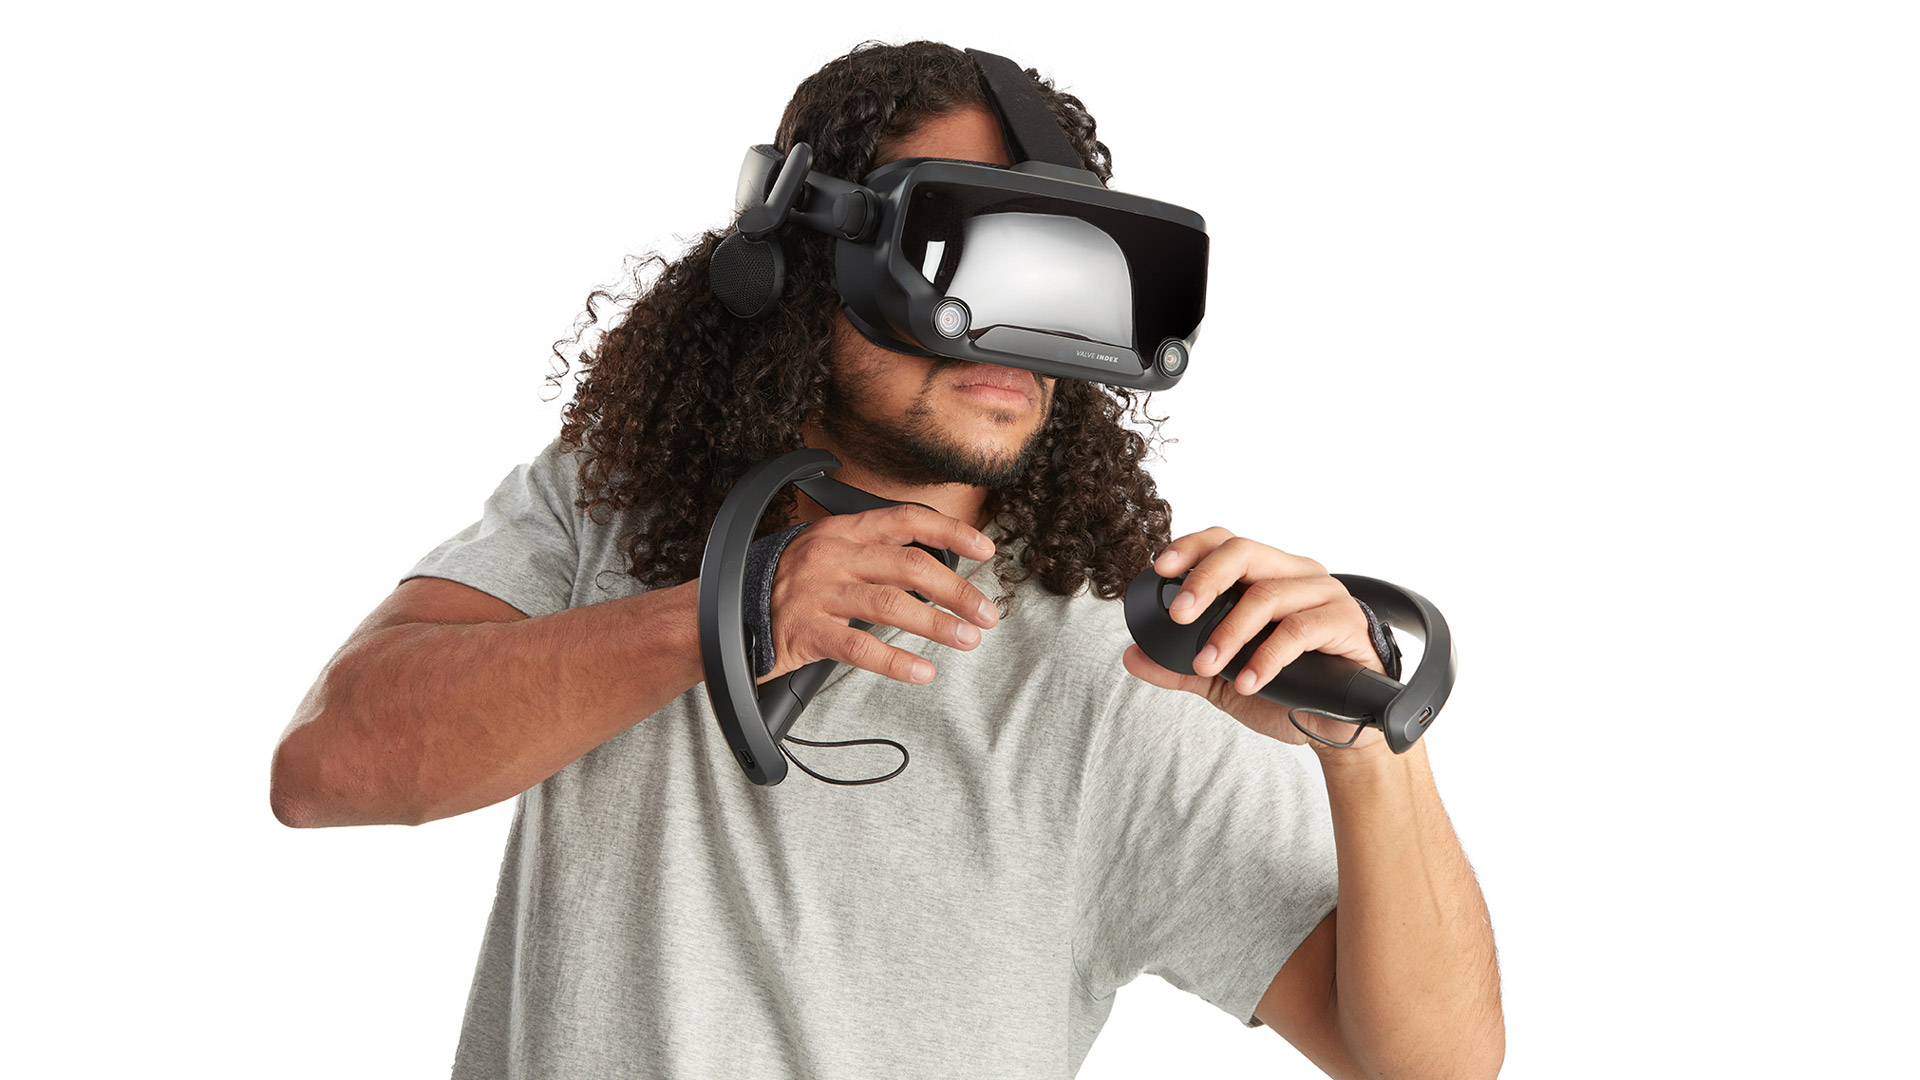 Valve Index Pre-orders Start May 1st, Headset and Bundle Price Confirmed